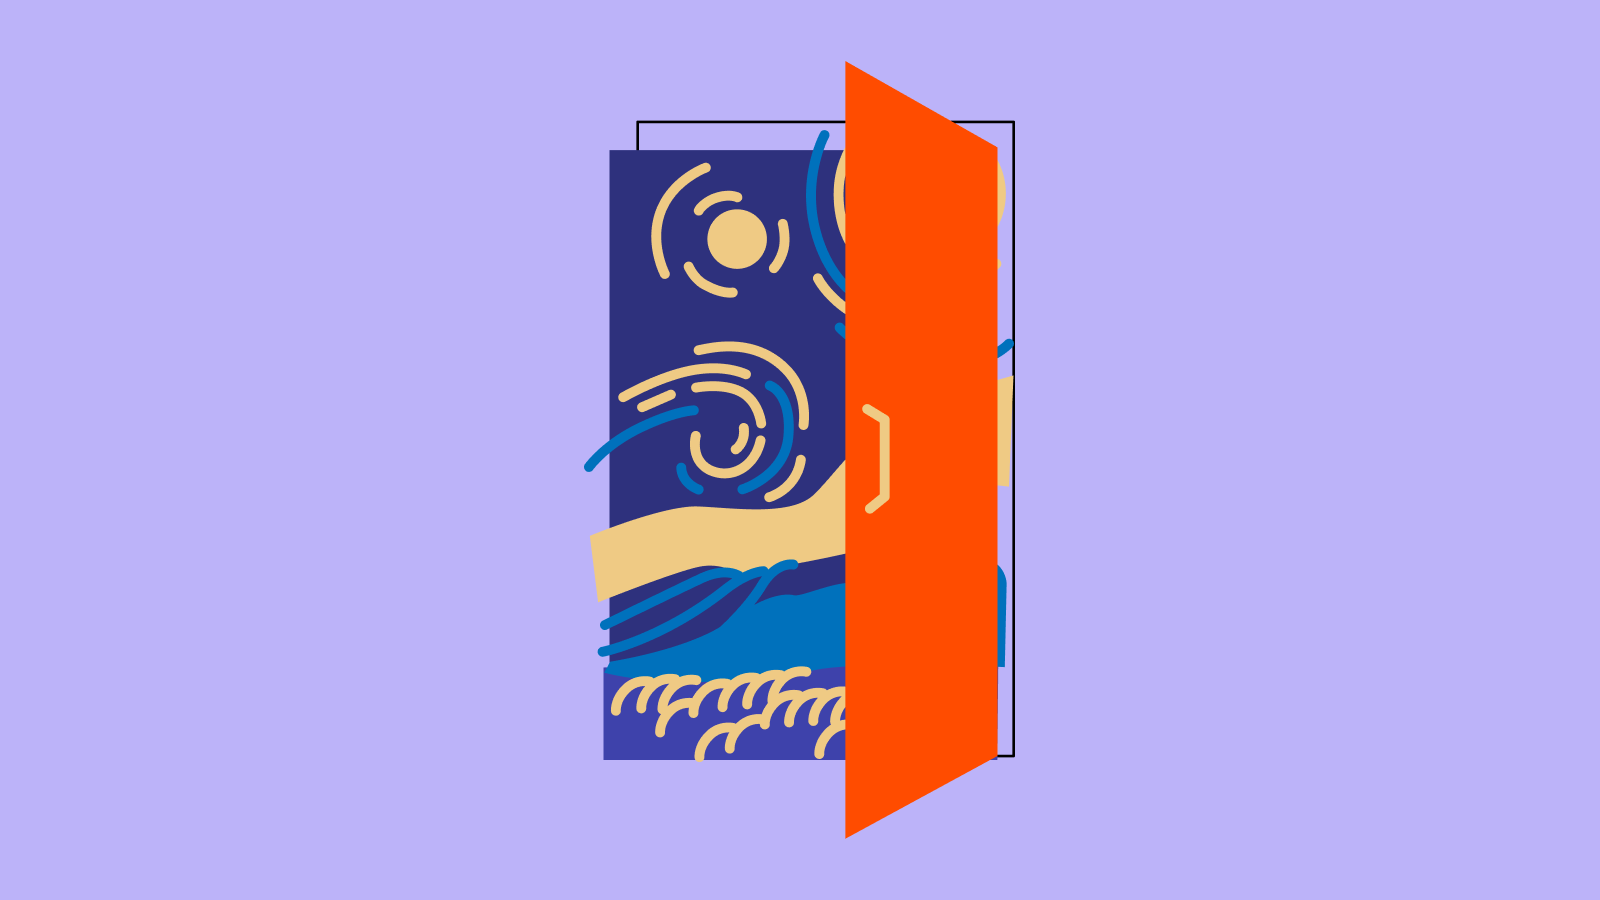 an open bright orange door with an illustration of Vincent van Gogh's The Starry Night painting behind it